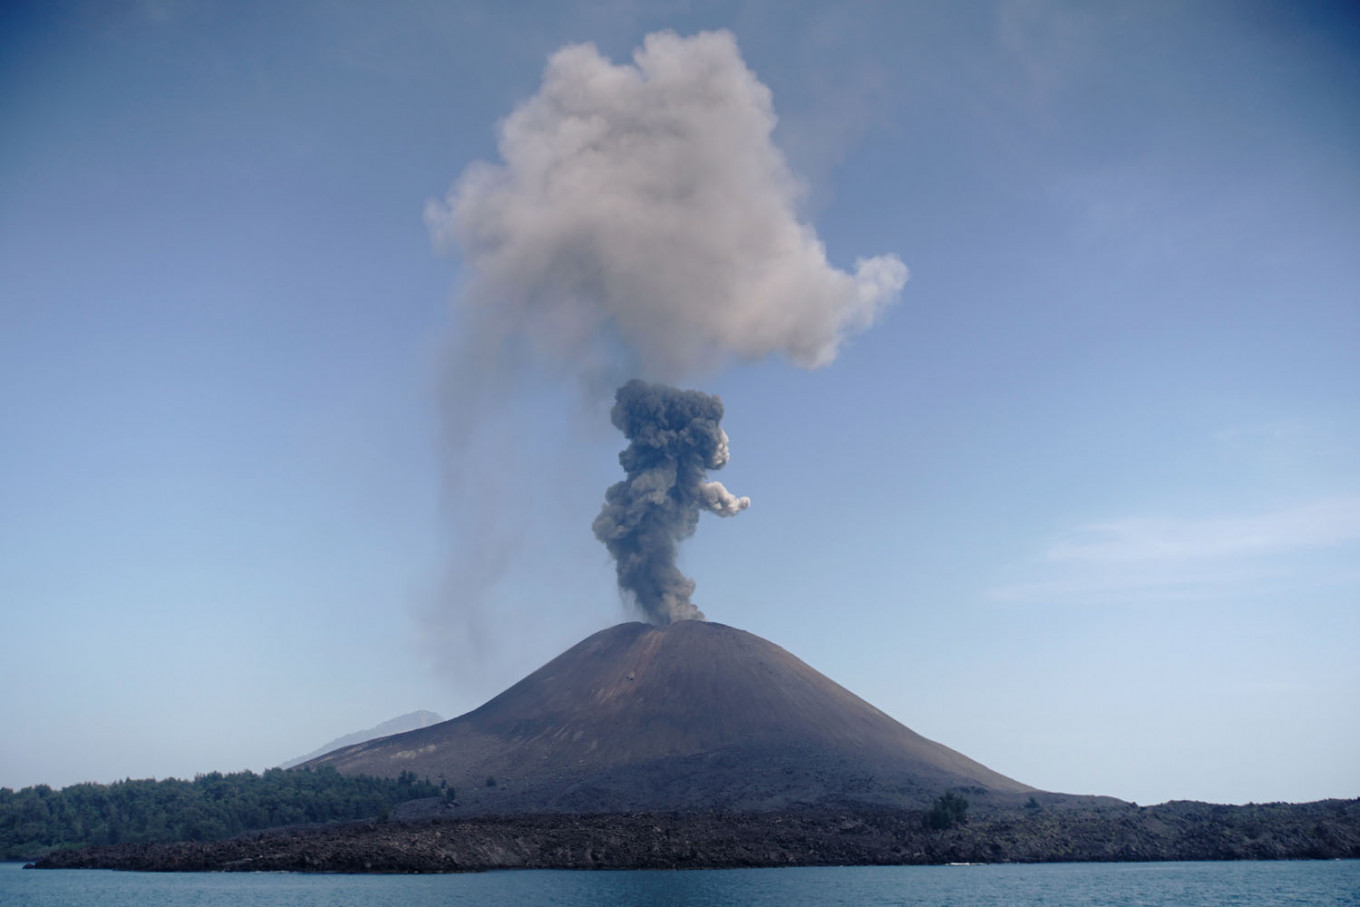 Anak Krakatau erupts, spewing out 200-meter-high column of ash